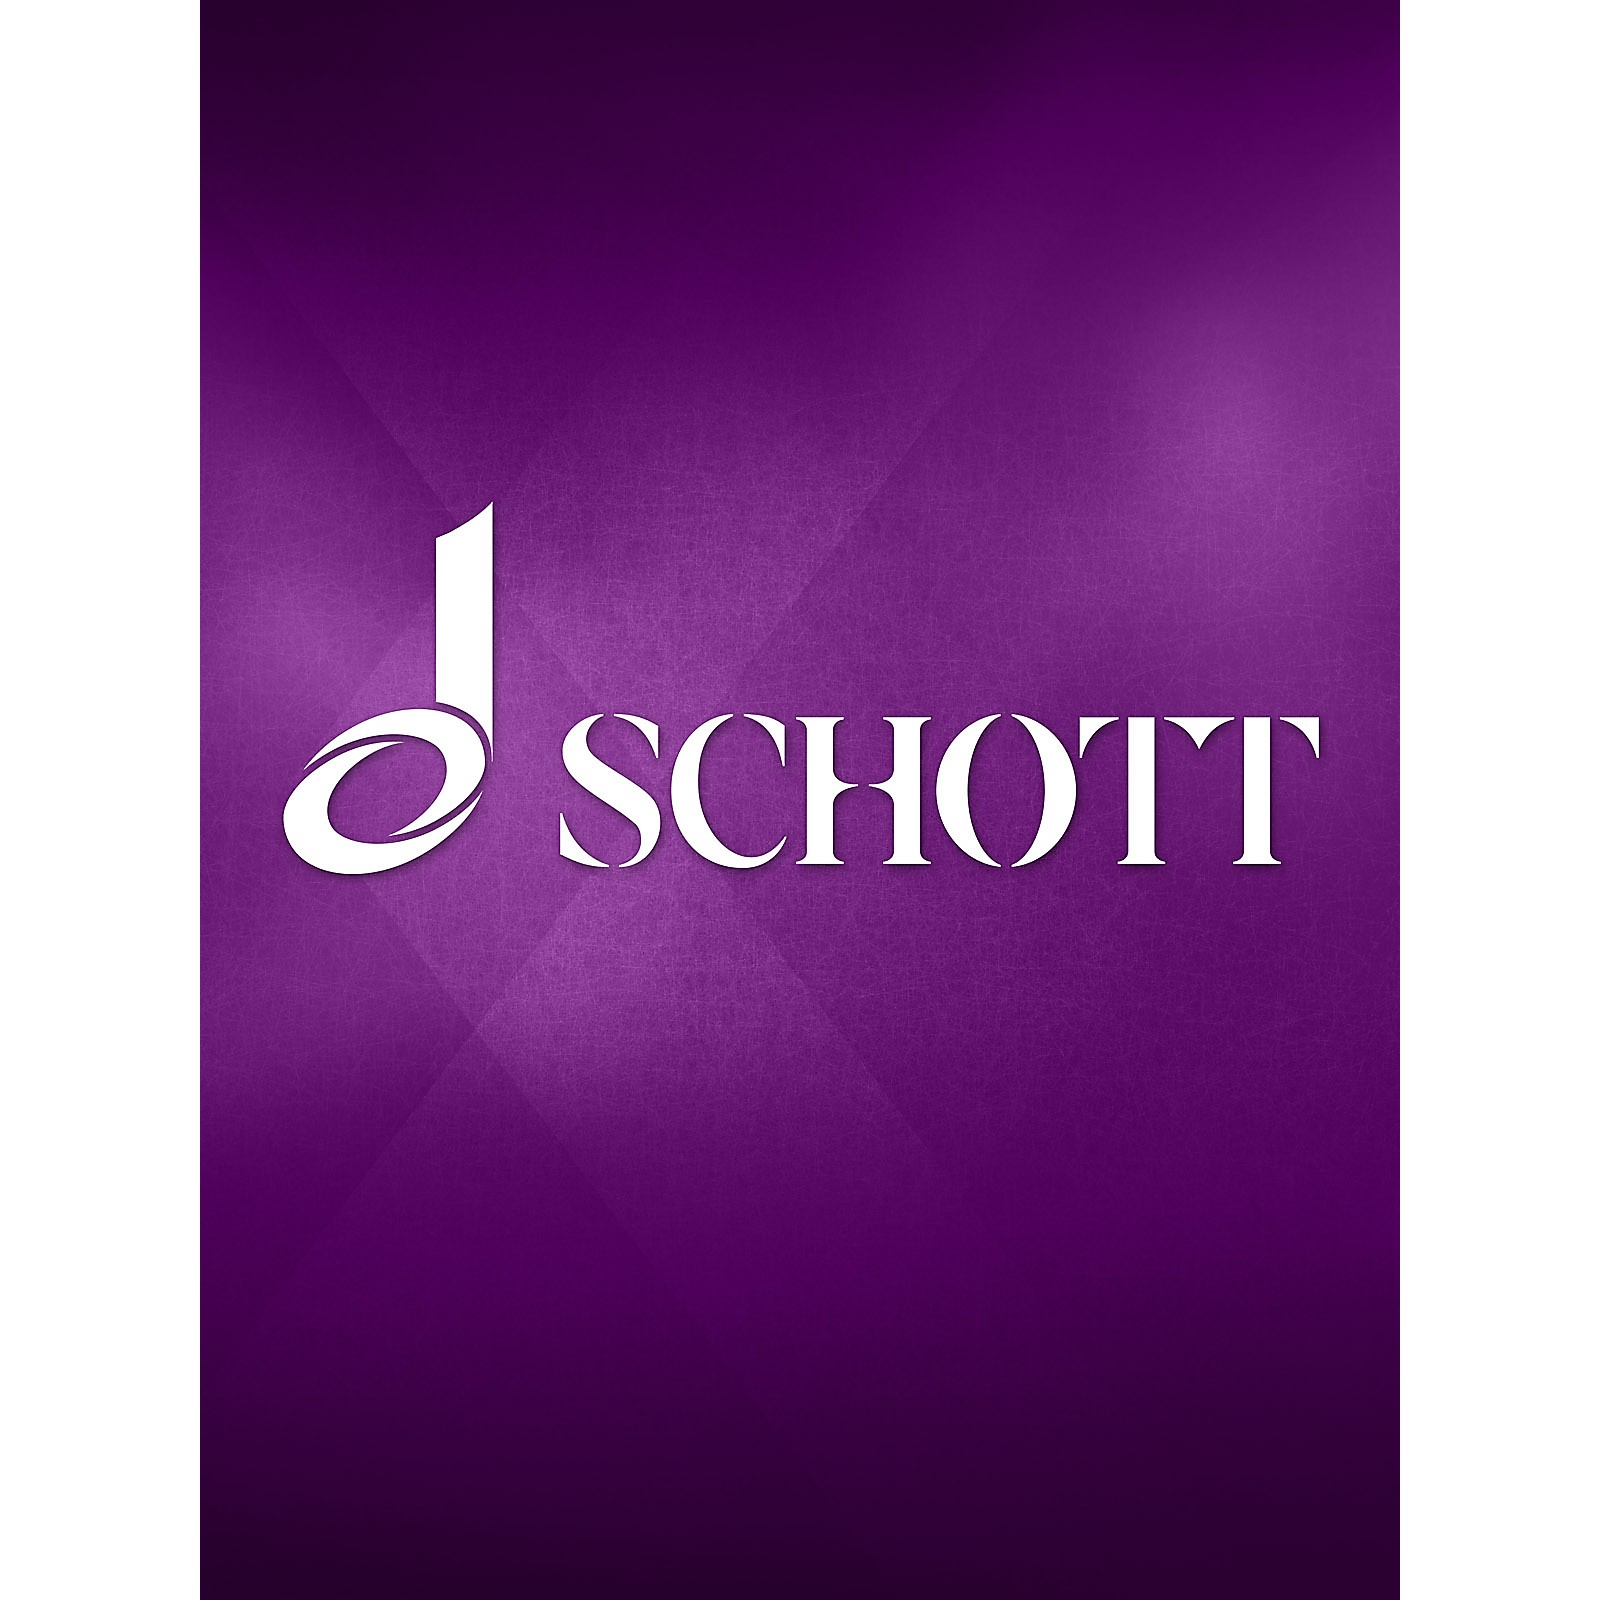 Mobart Music Publications/Schott Helicon Flute Sextet (Study Score) Schott Series Softcover Composed by Carlos Rausch